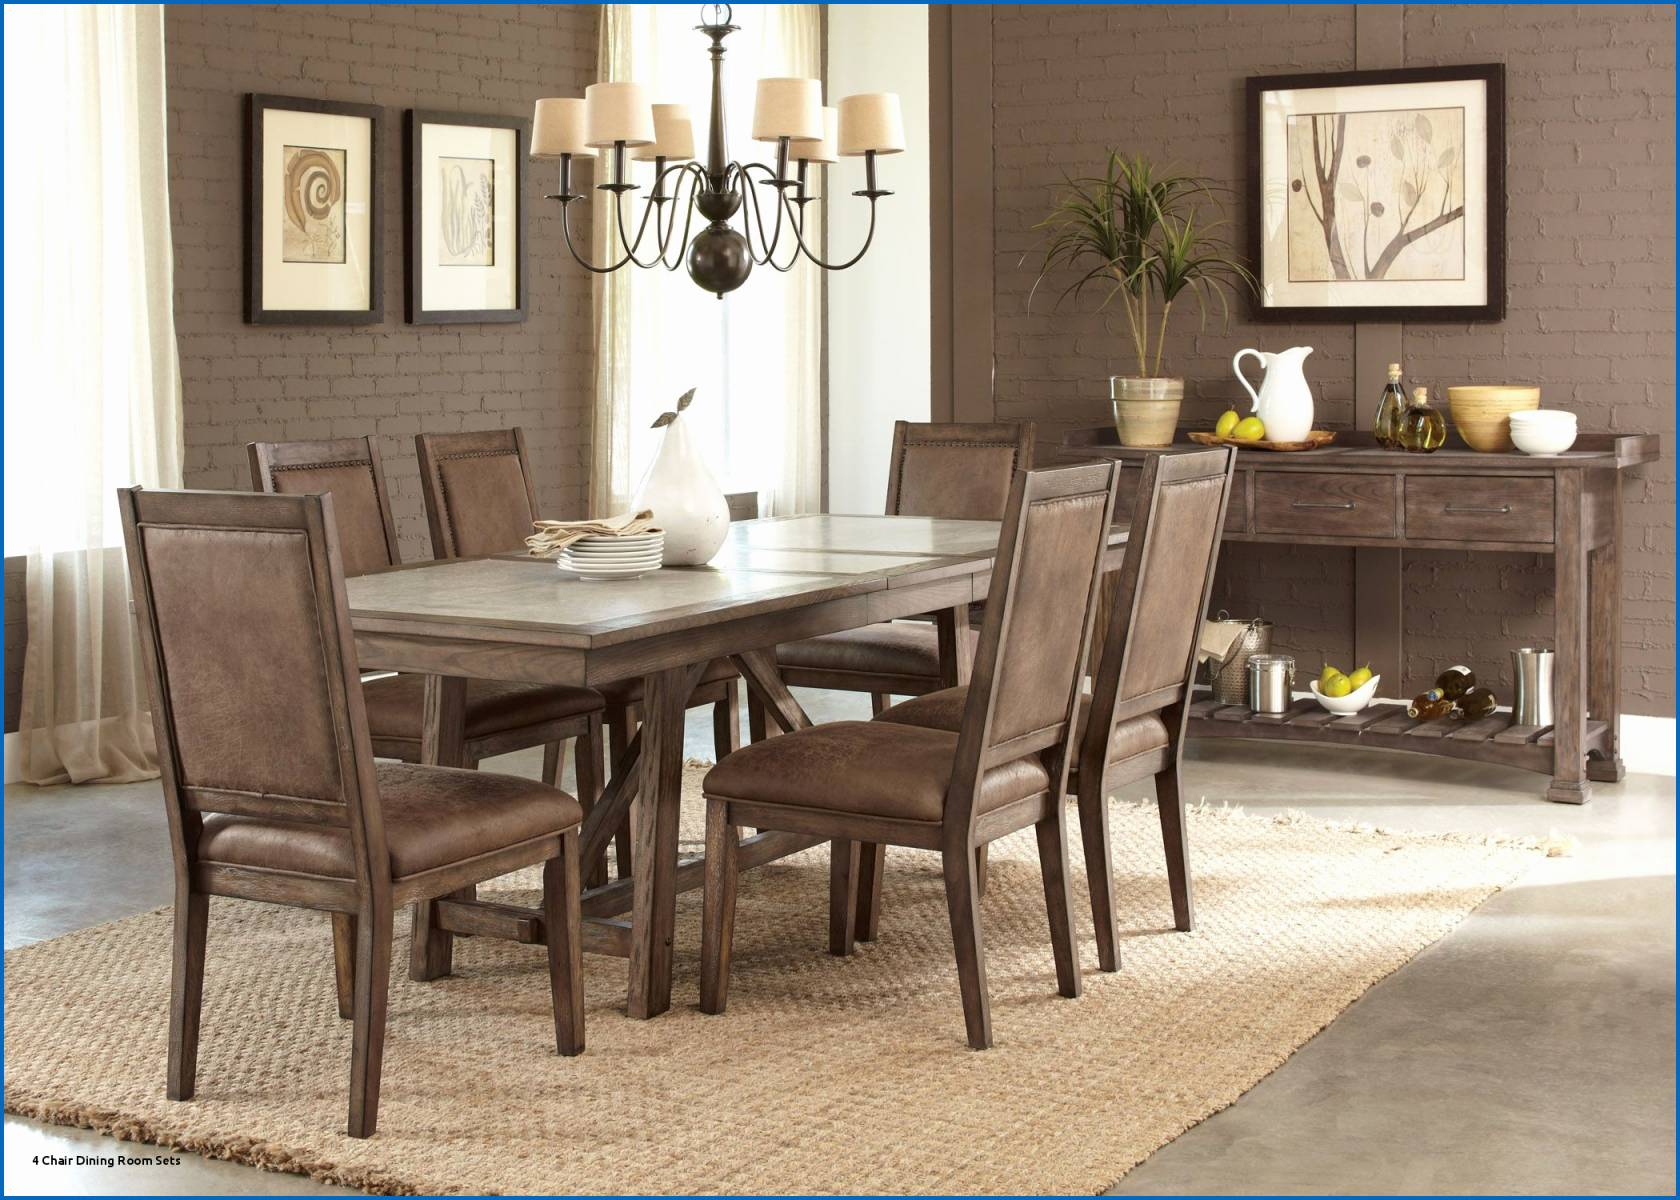 Dining Room Chair Set Small Dining Room Sets Awesome Living Room for Small Living Room Sets